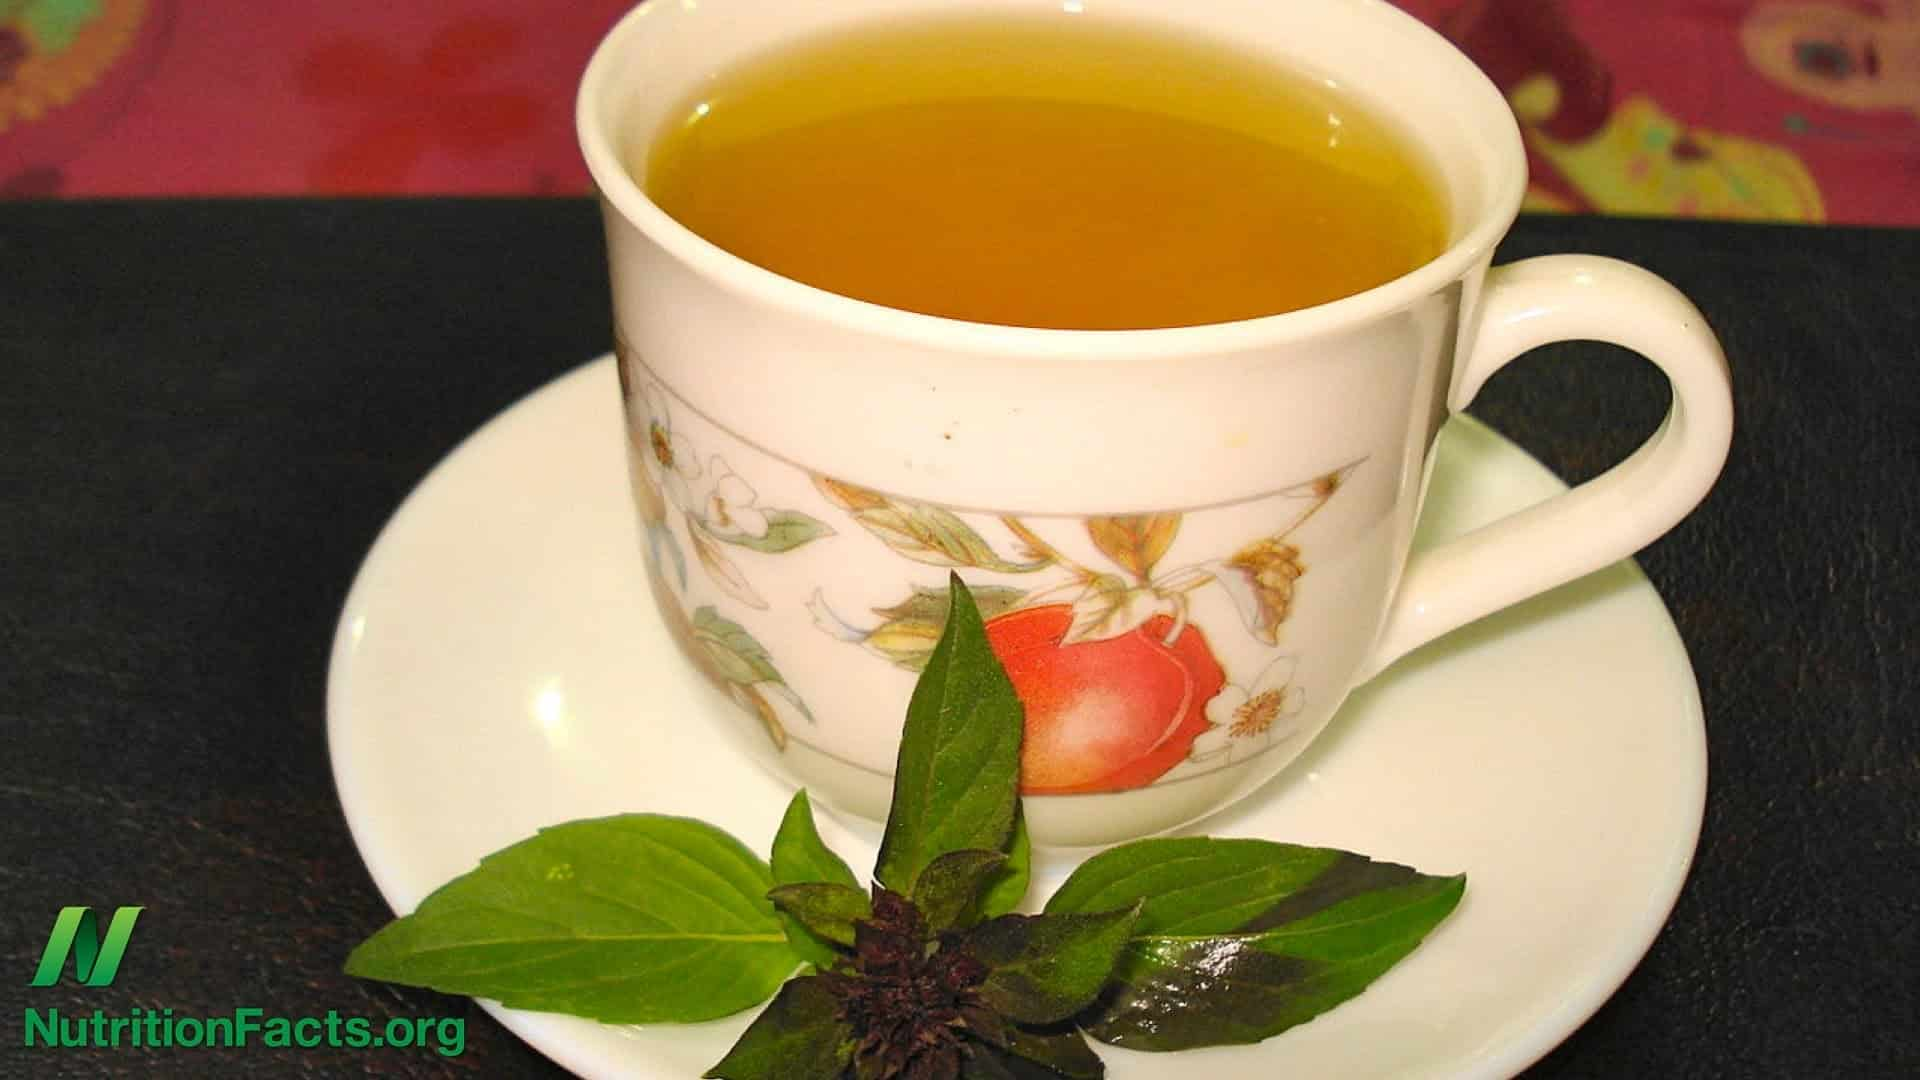 Is Tulsi Tea Good For You?